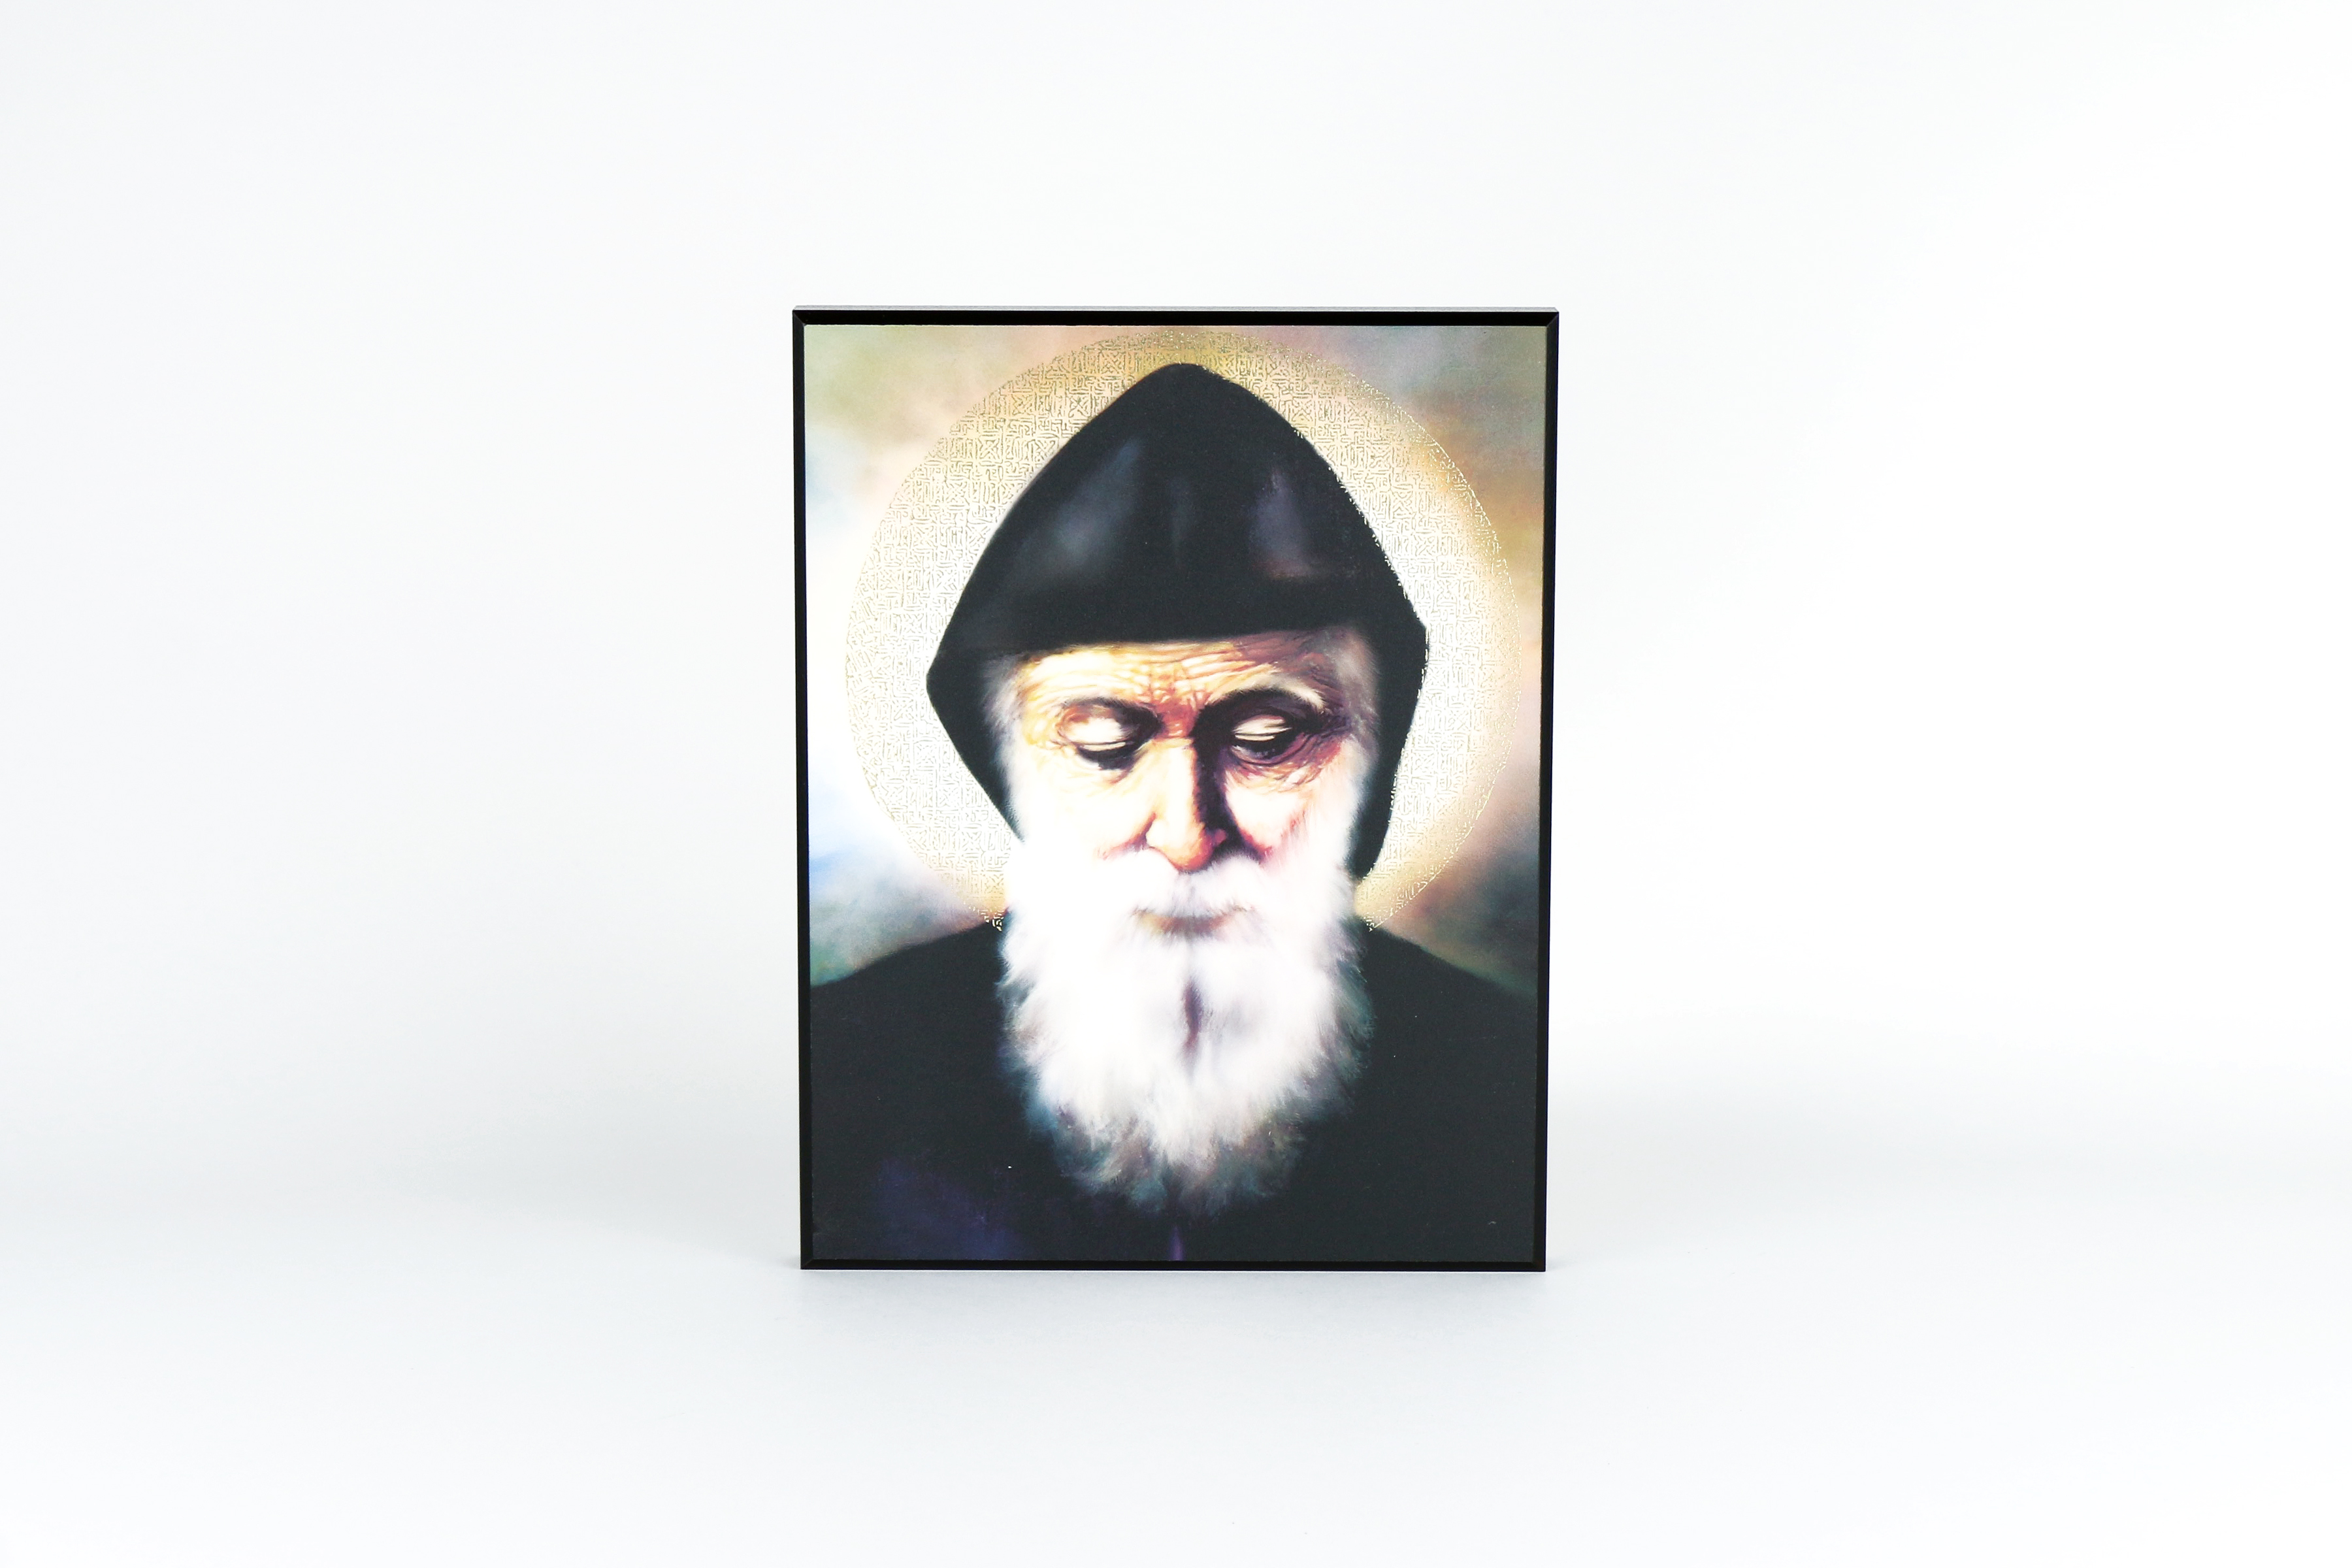 Plaque de saint Charbel / Plaque of Saint Charbel